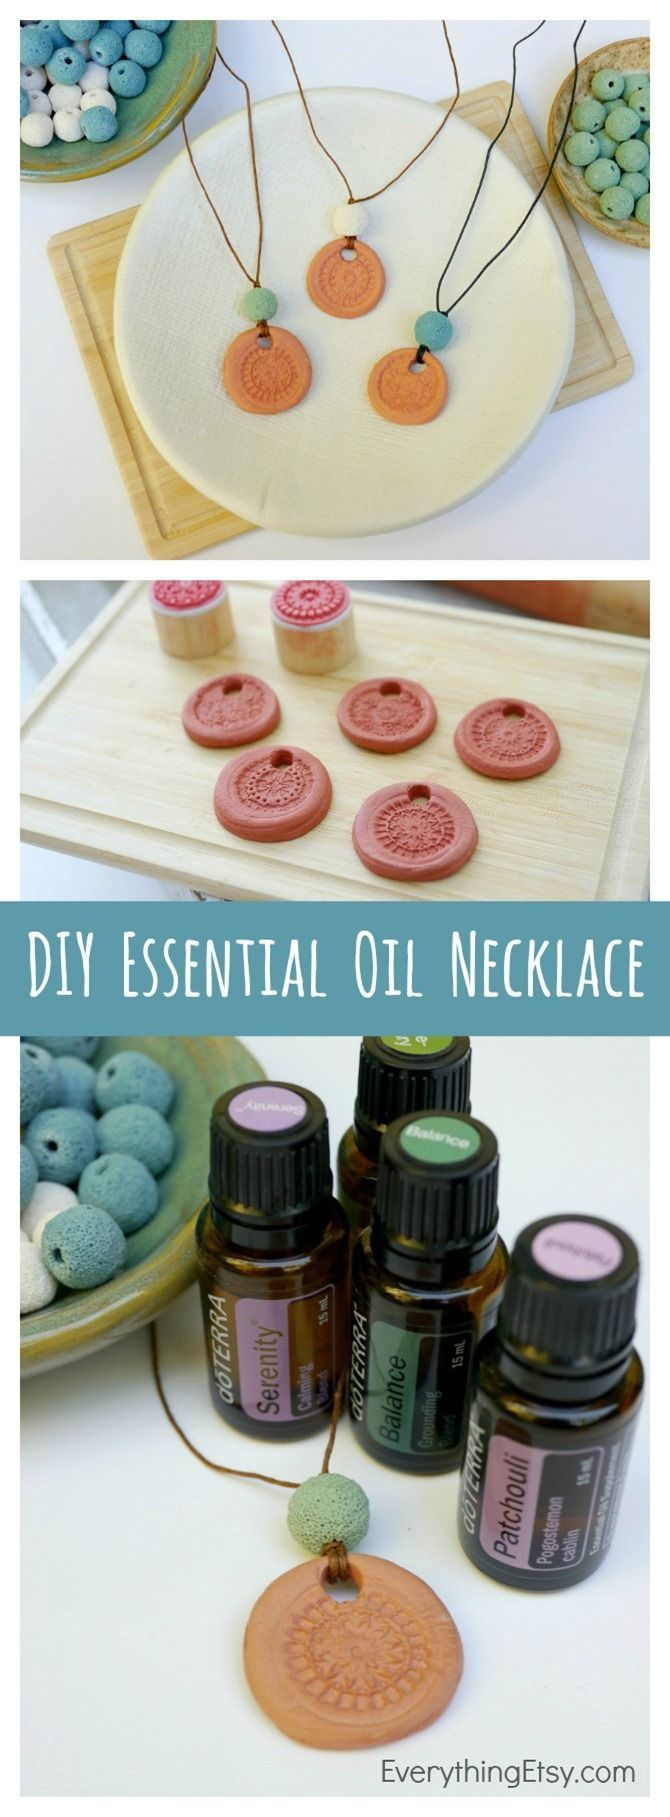 This DIY essential oil necklace makes for an unique mothers day gift! It's also an easy craft to diy for yourself - the calming scent is bound to relieve your stress.